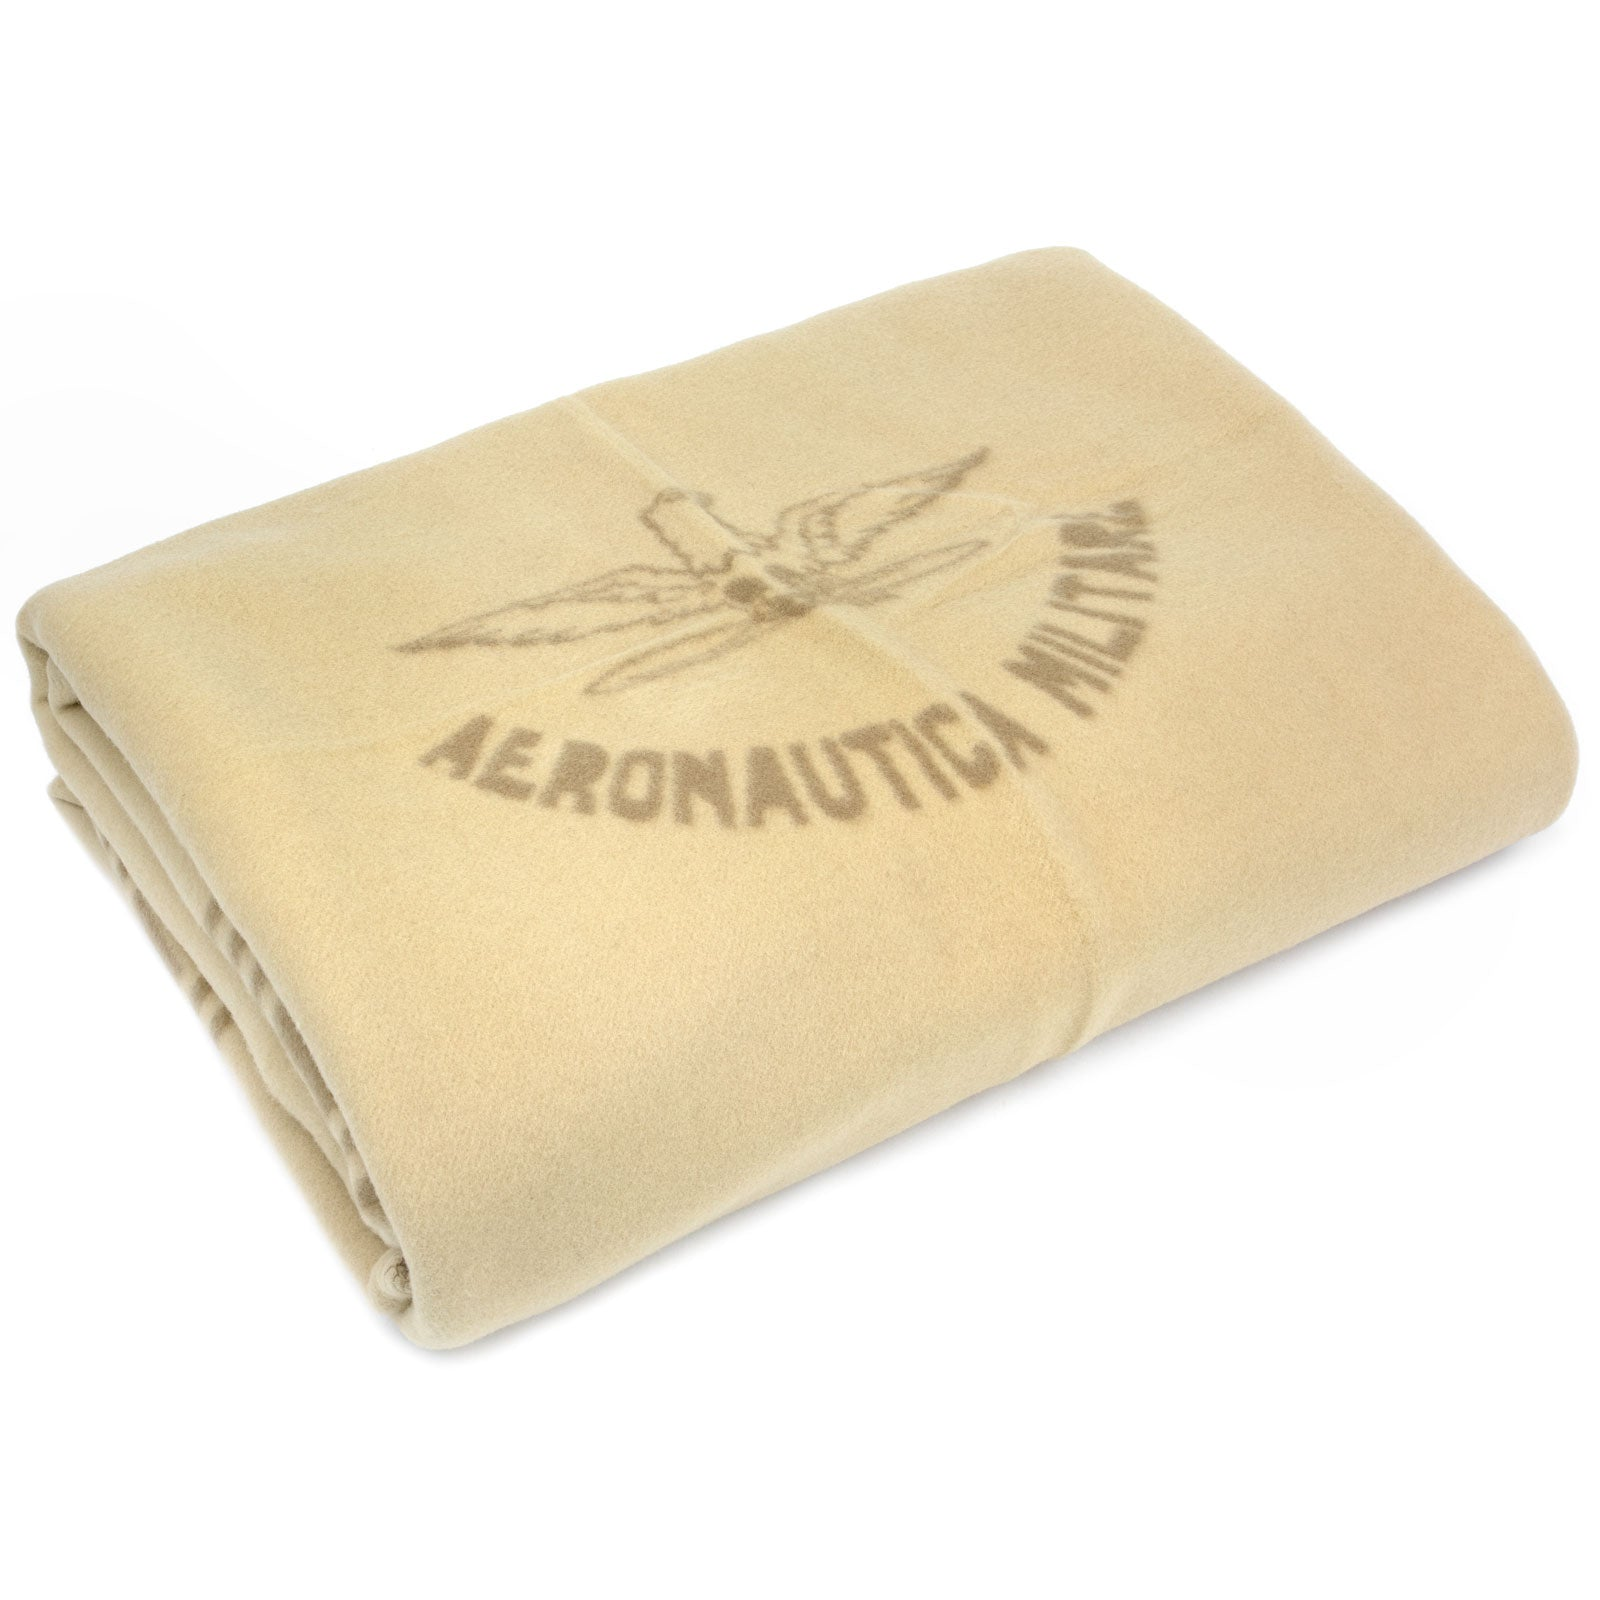 Real Italian Air Force Blanket Swiss Link Military Surplus